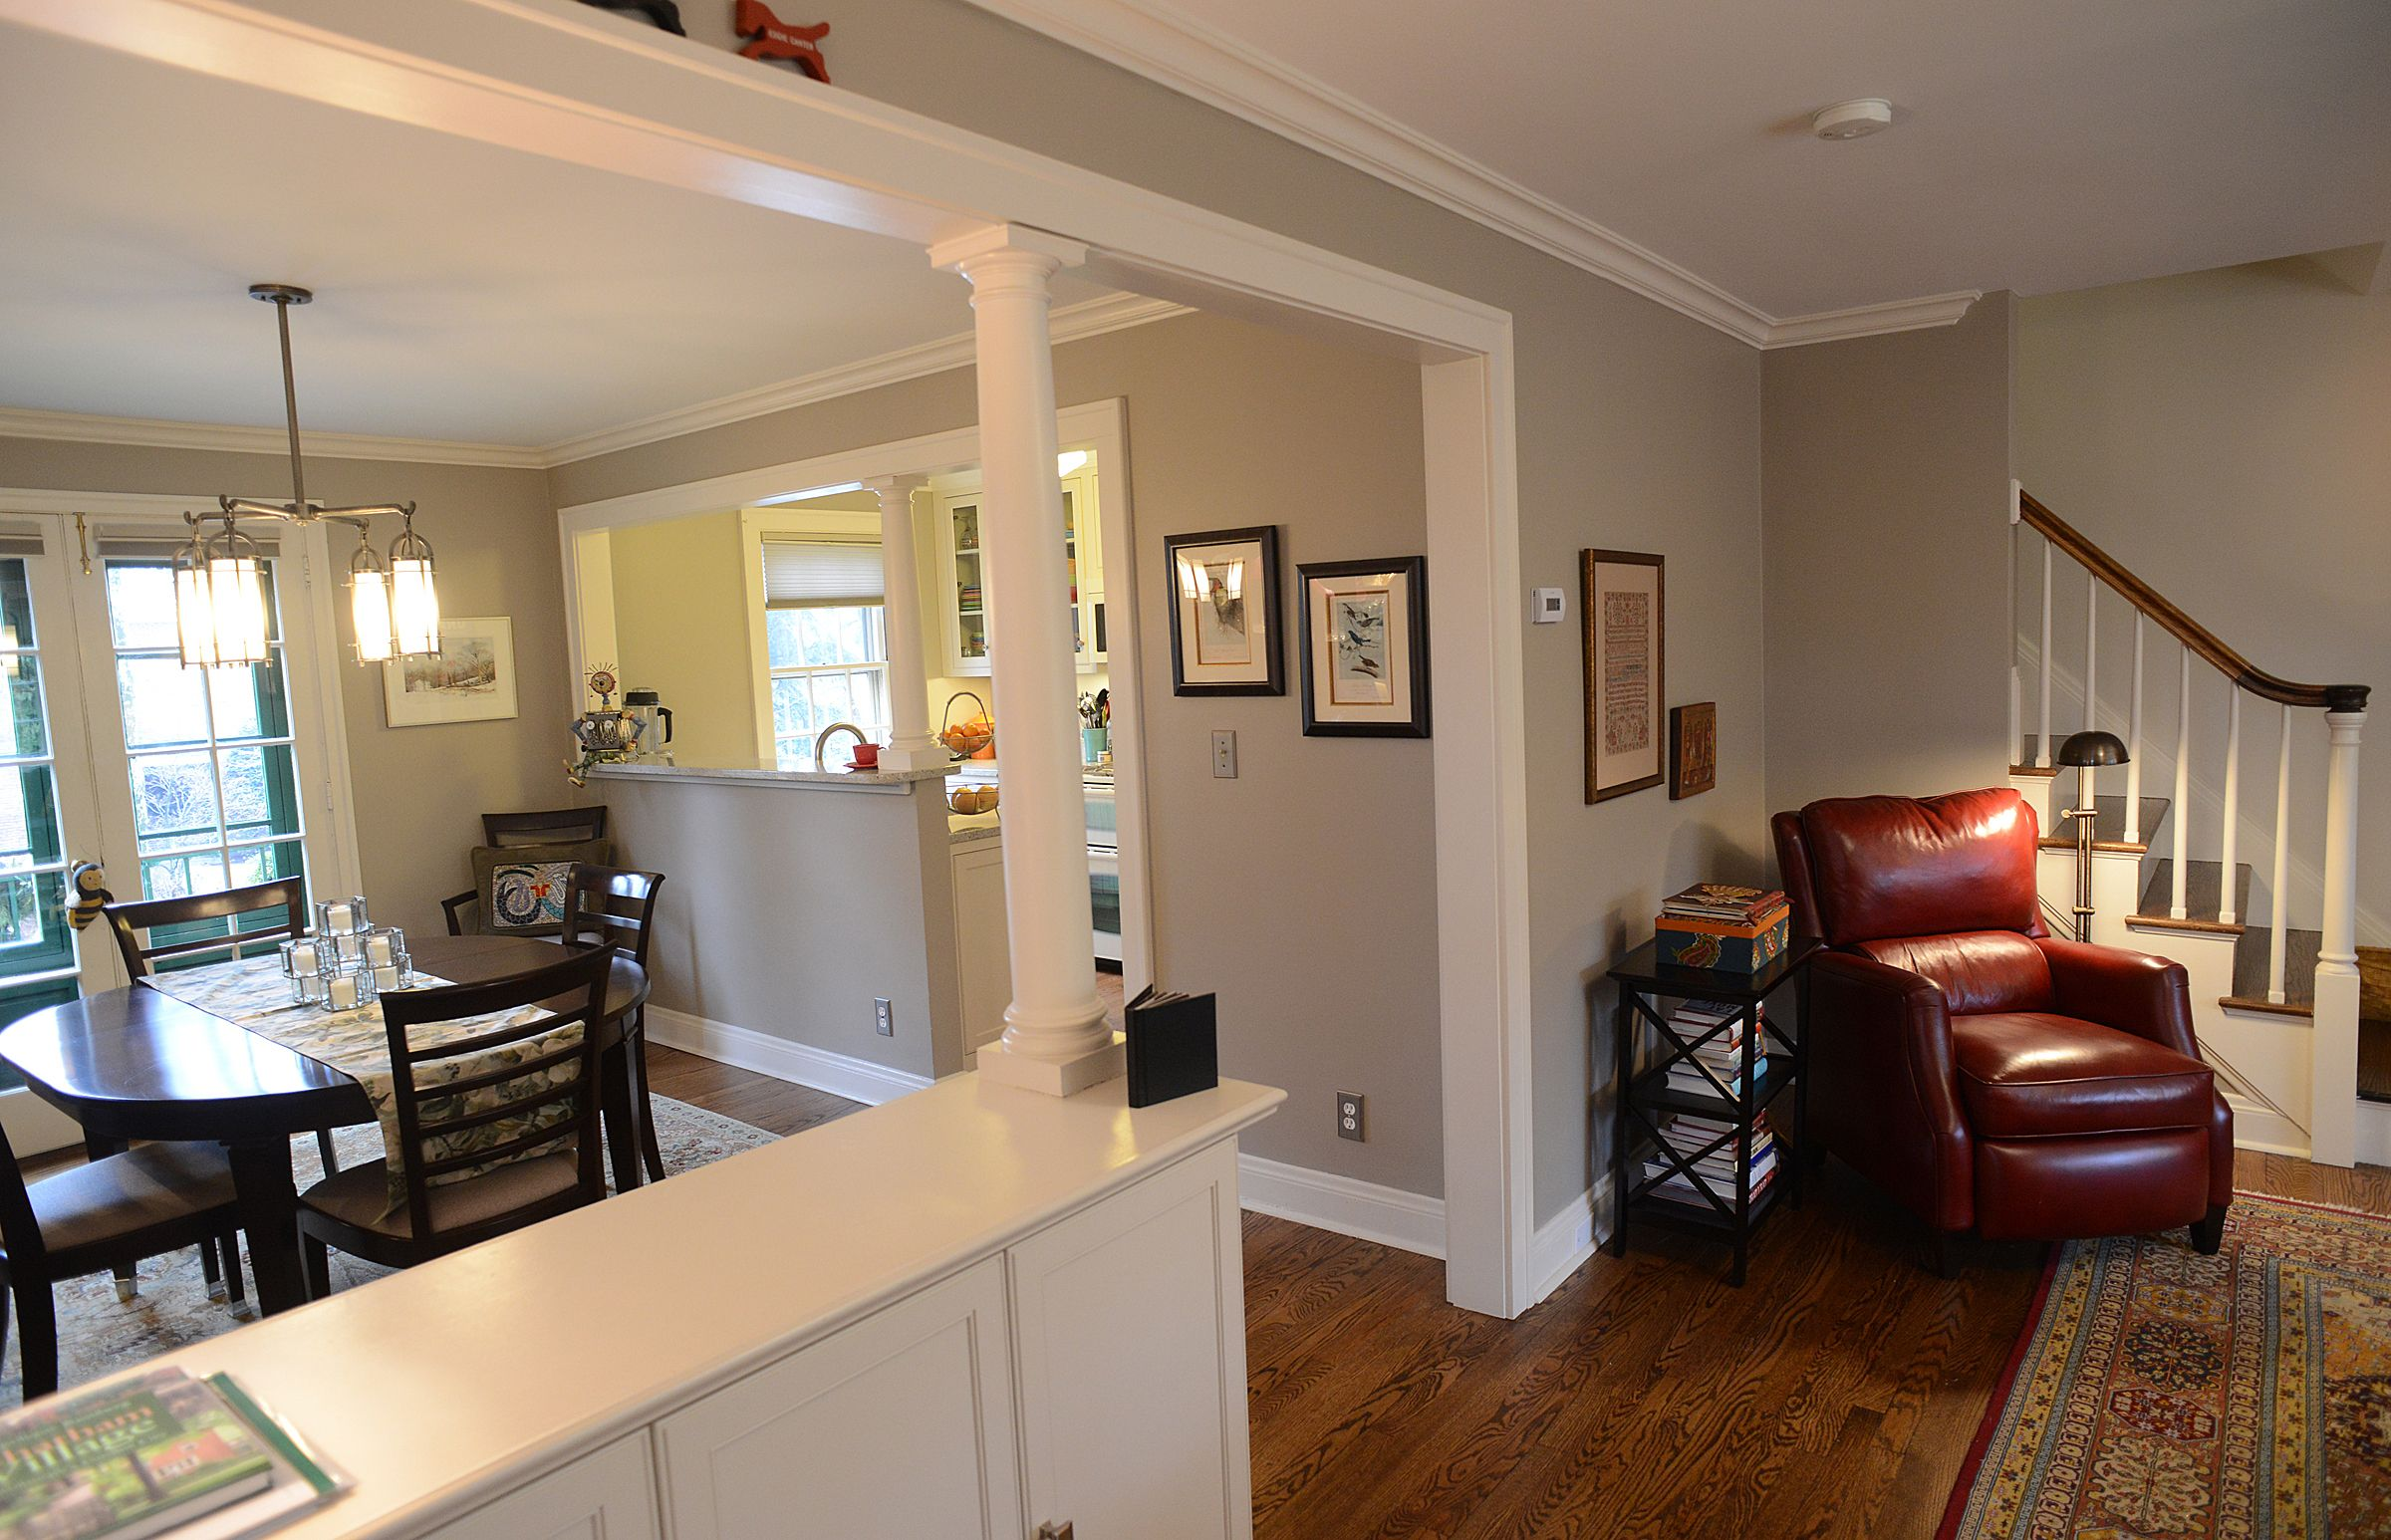 A Half Wall With Single Roman Style Column Divides The Dining Room And Living Giving First Floor Th